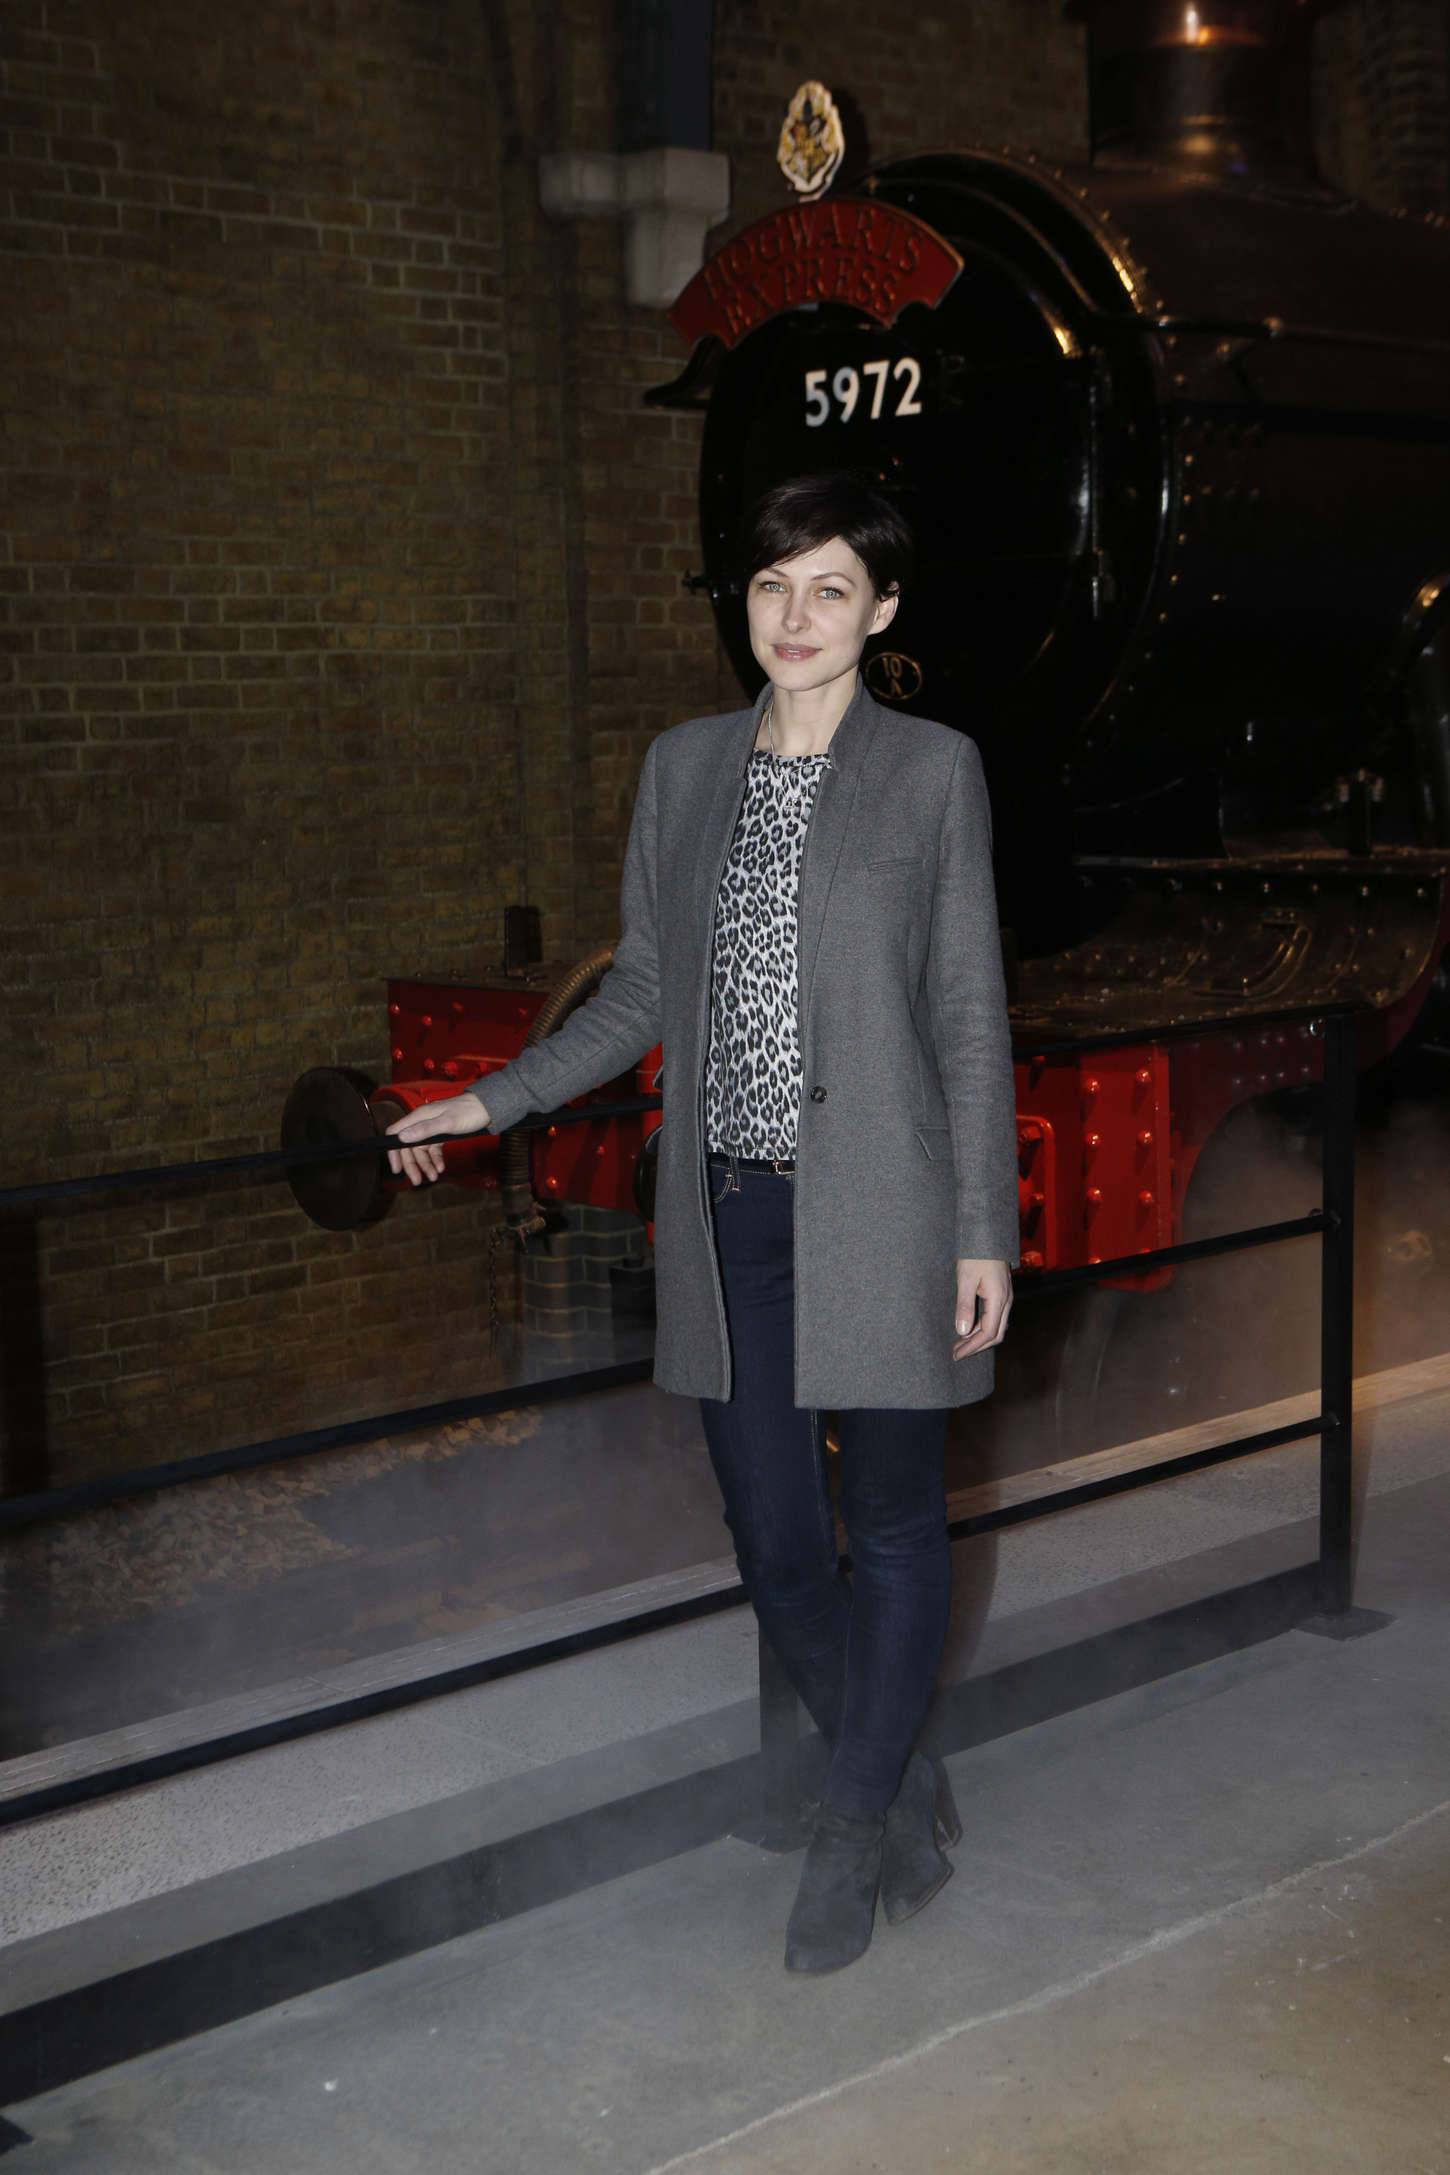 Emma Willis Original Hogwarts Express Platform Warner Bros. Studio Tour in London